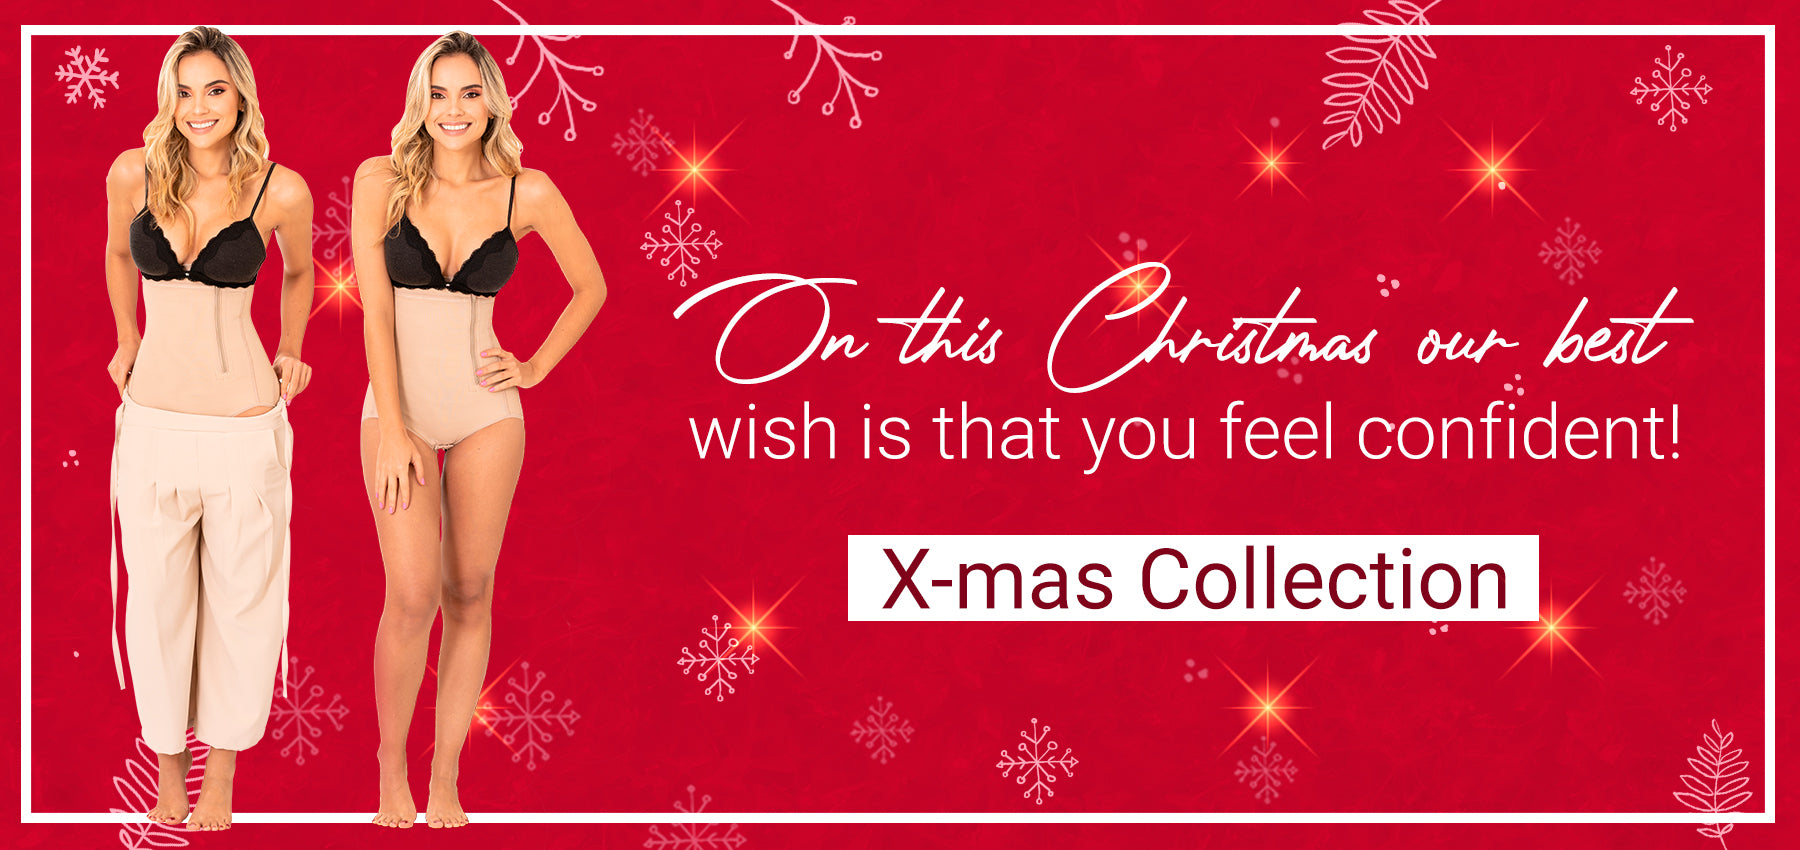 On this Christmas our best wish is that you feel confident!